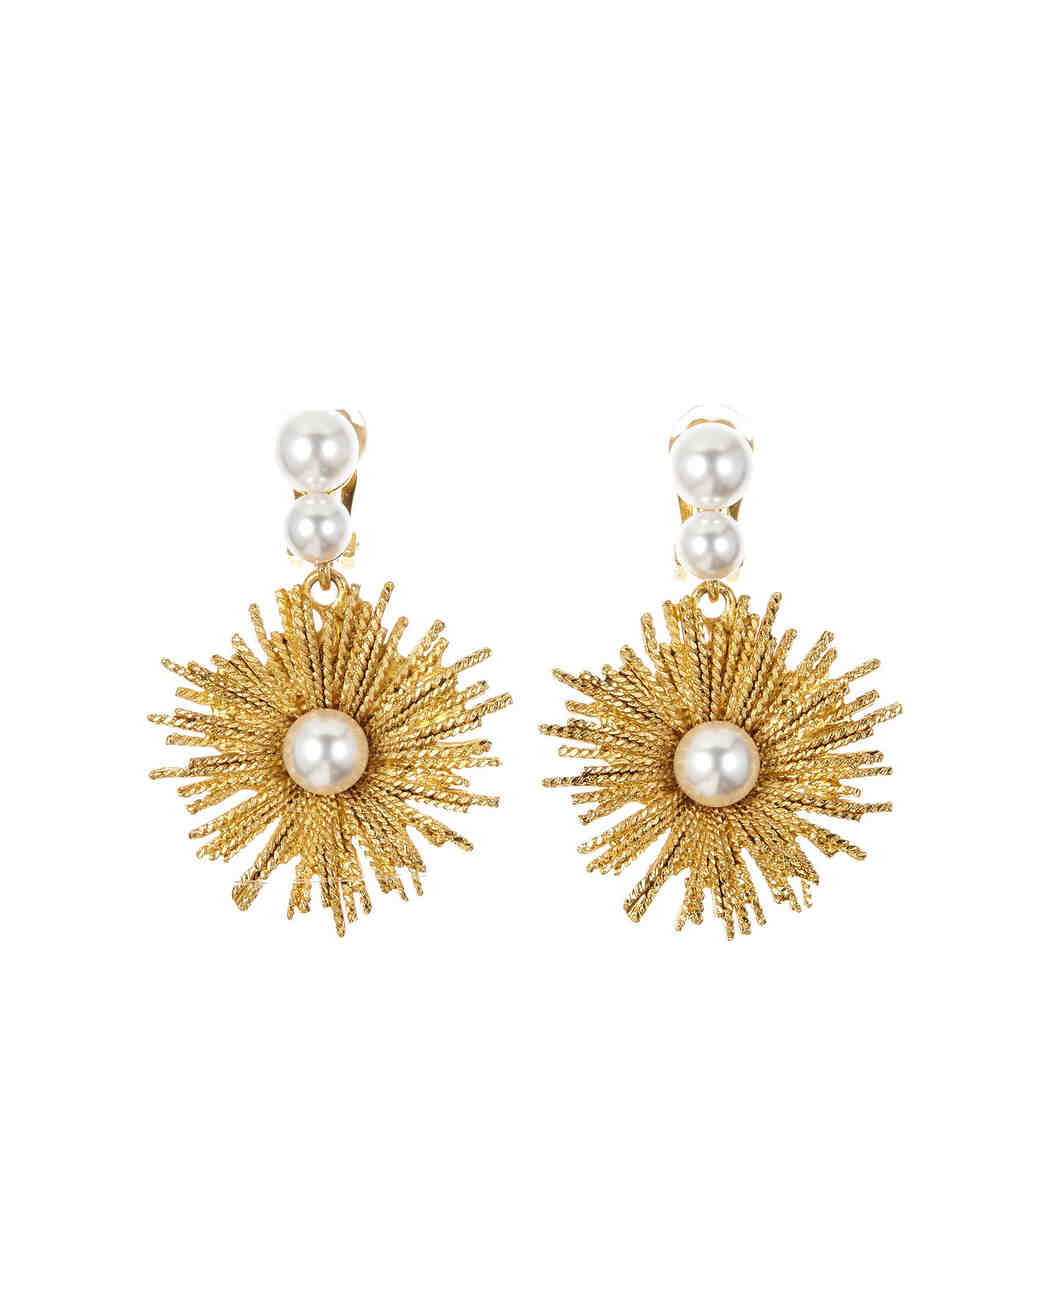 Pearl Wedding Earrings Oscar De La A